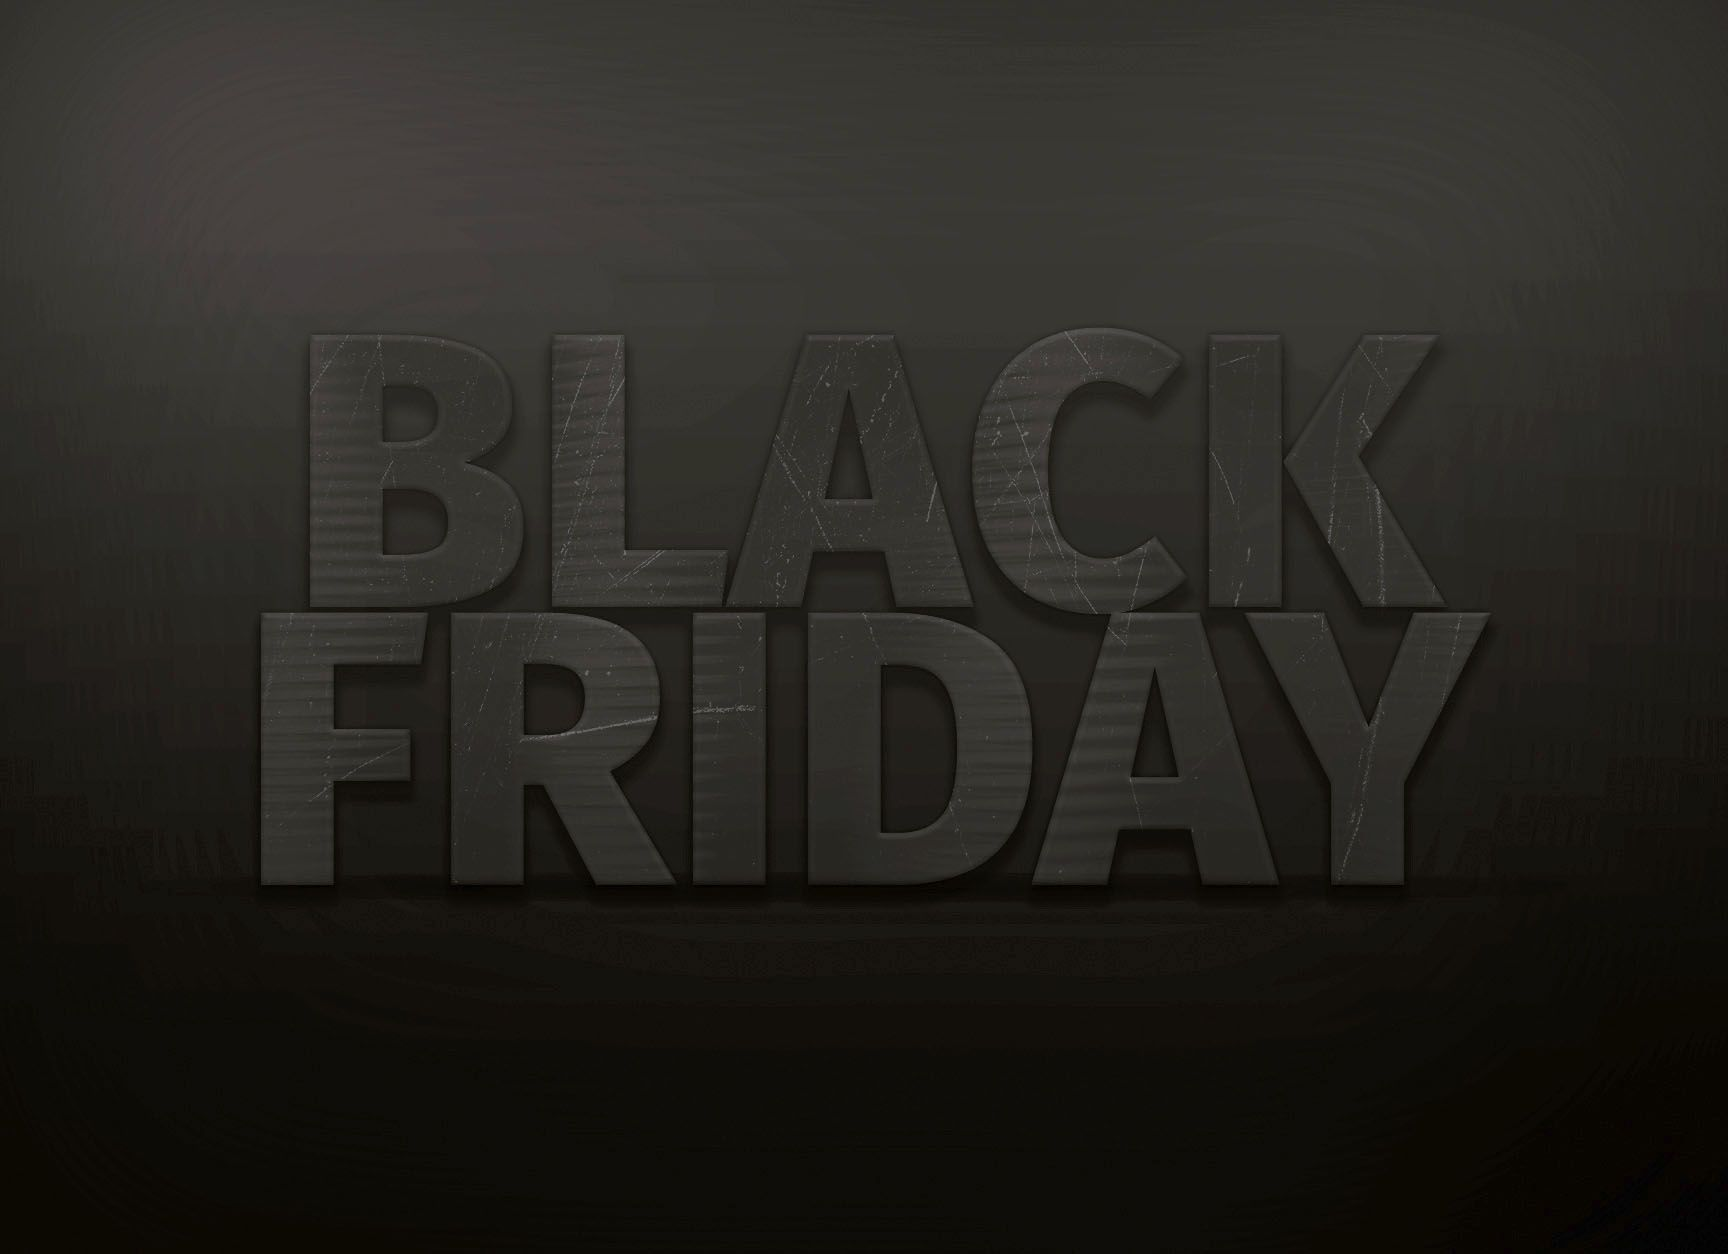 Ready for Black Friday: successful e-commerce experiences